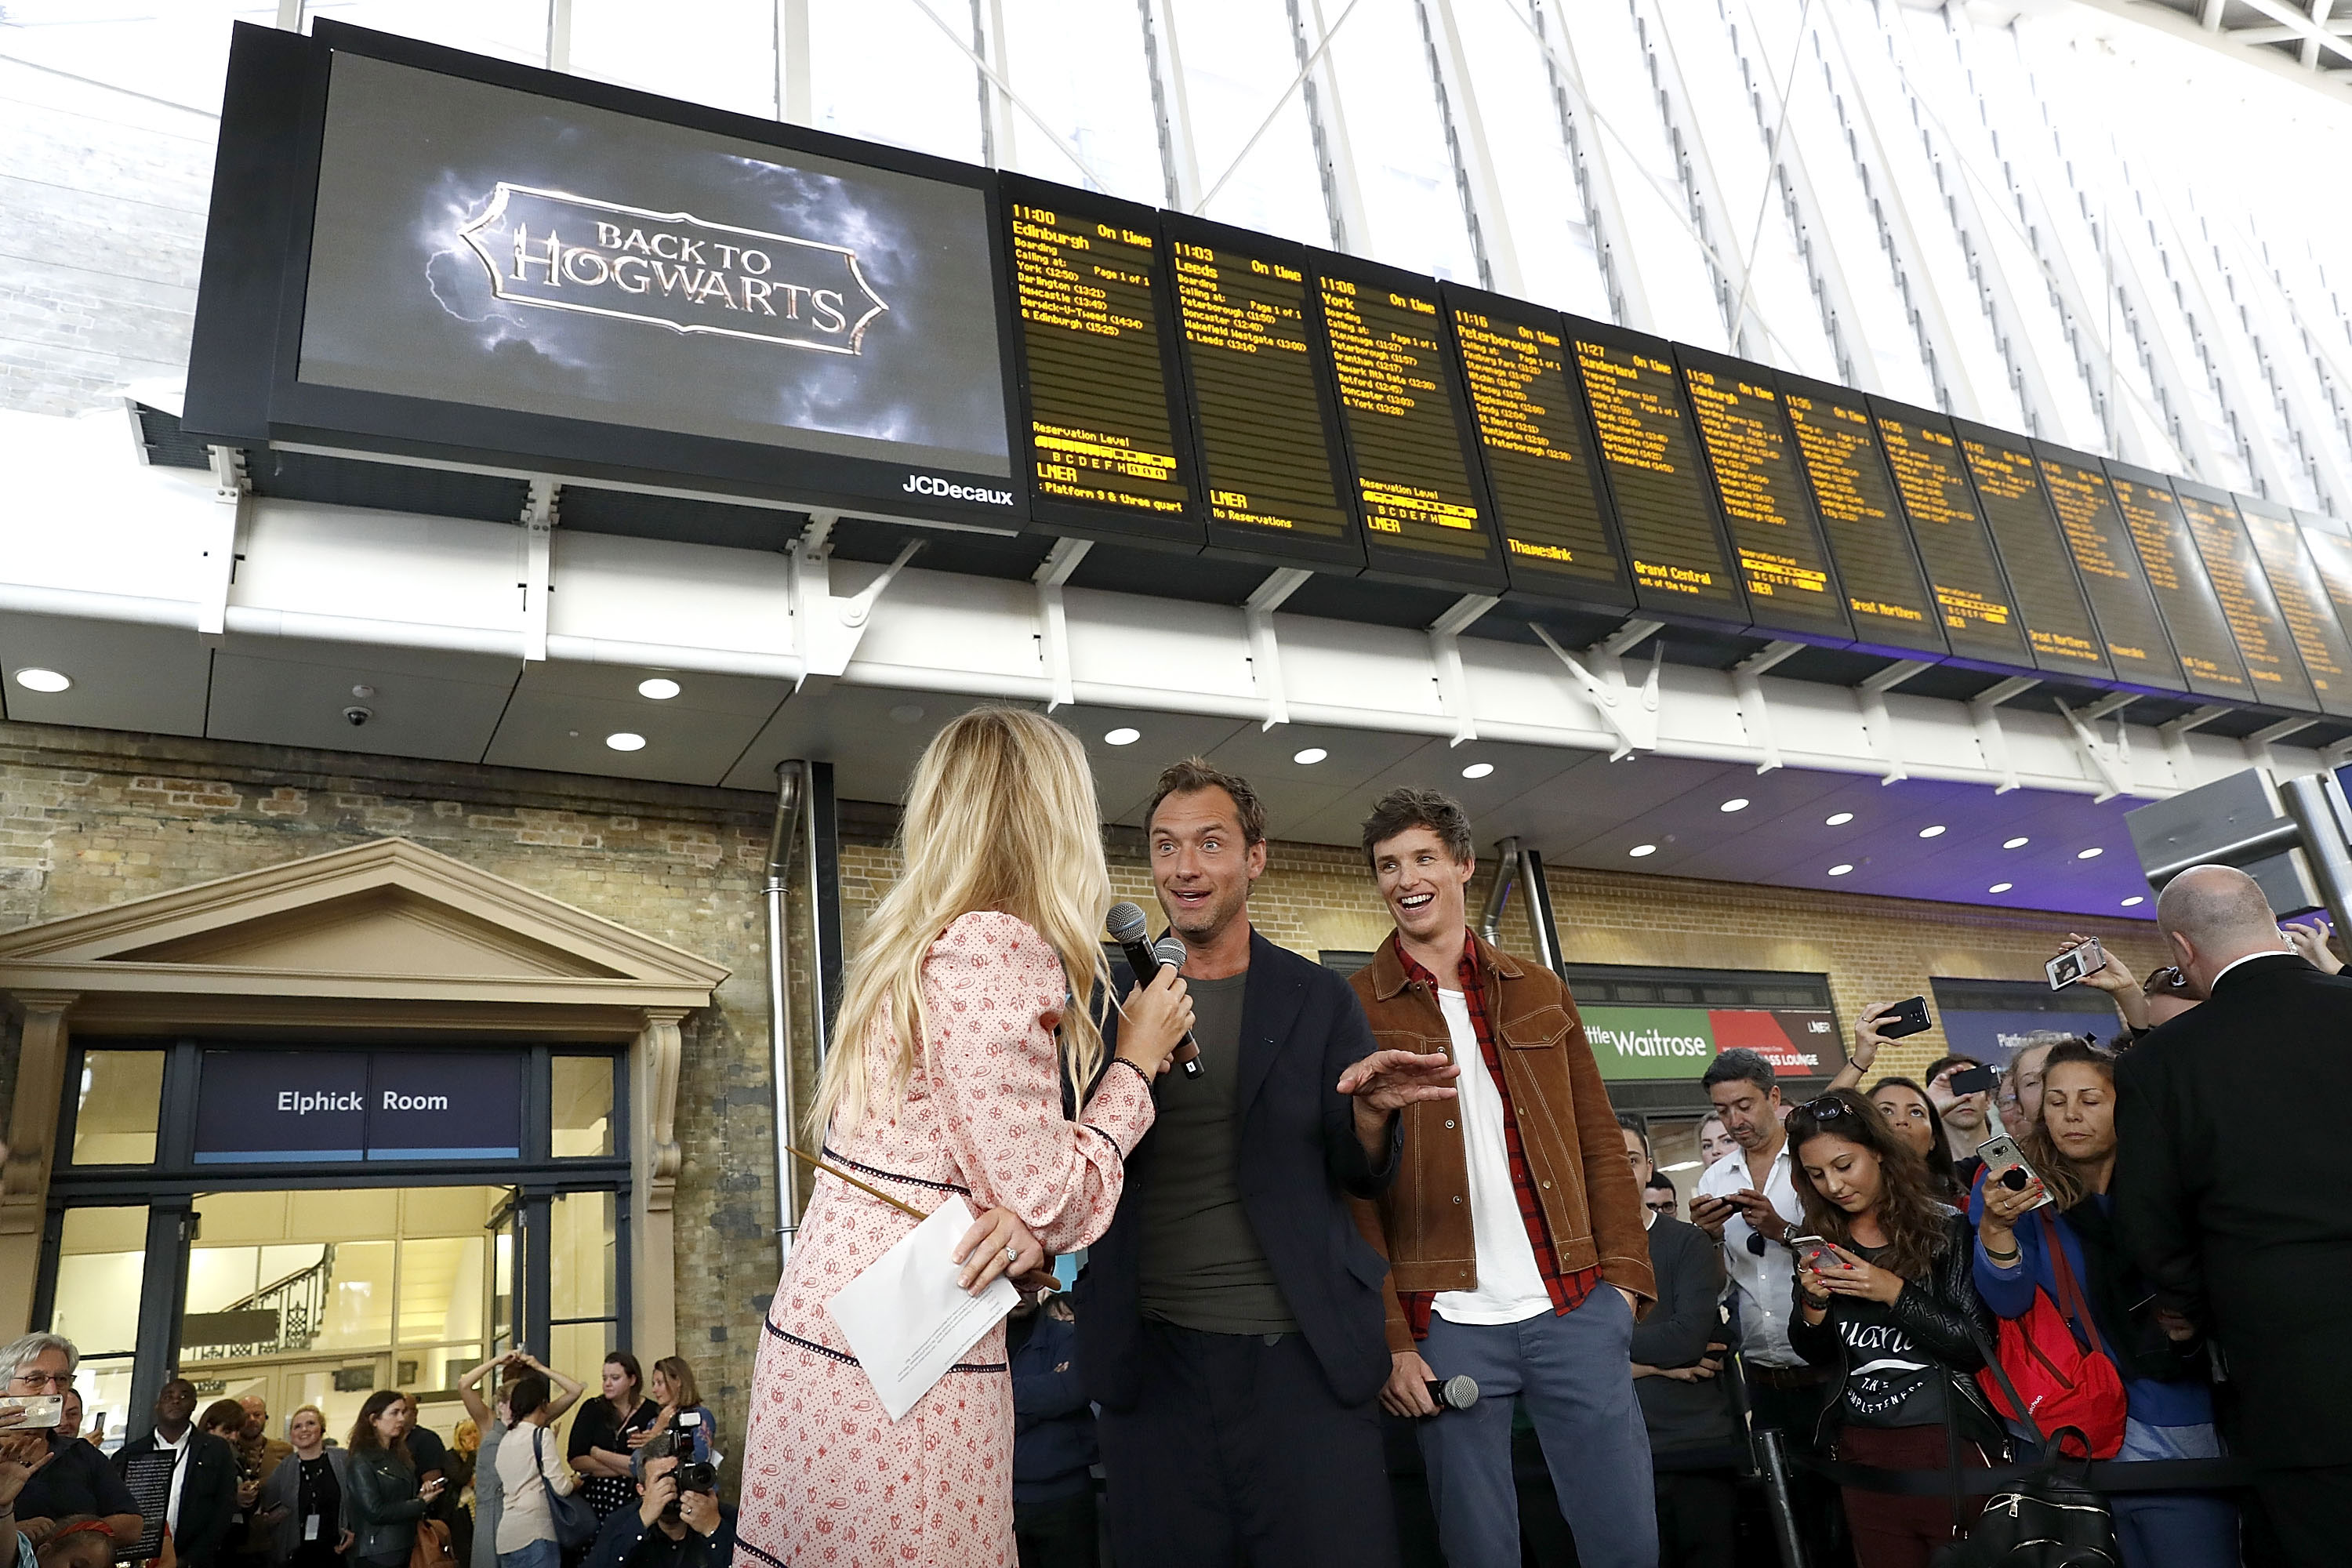 Law and Redmayne answer interview questions at King's Cross Station's Back to Hogwarts celebration.